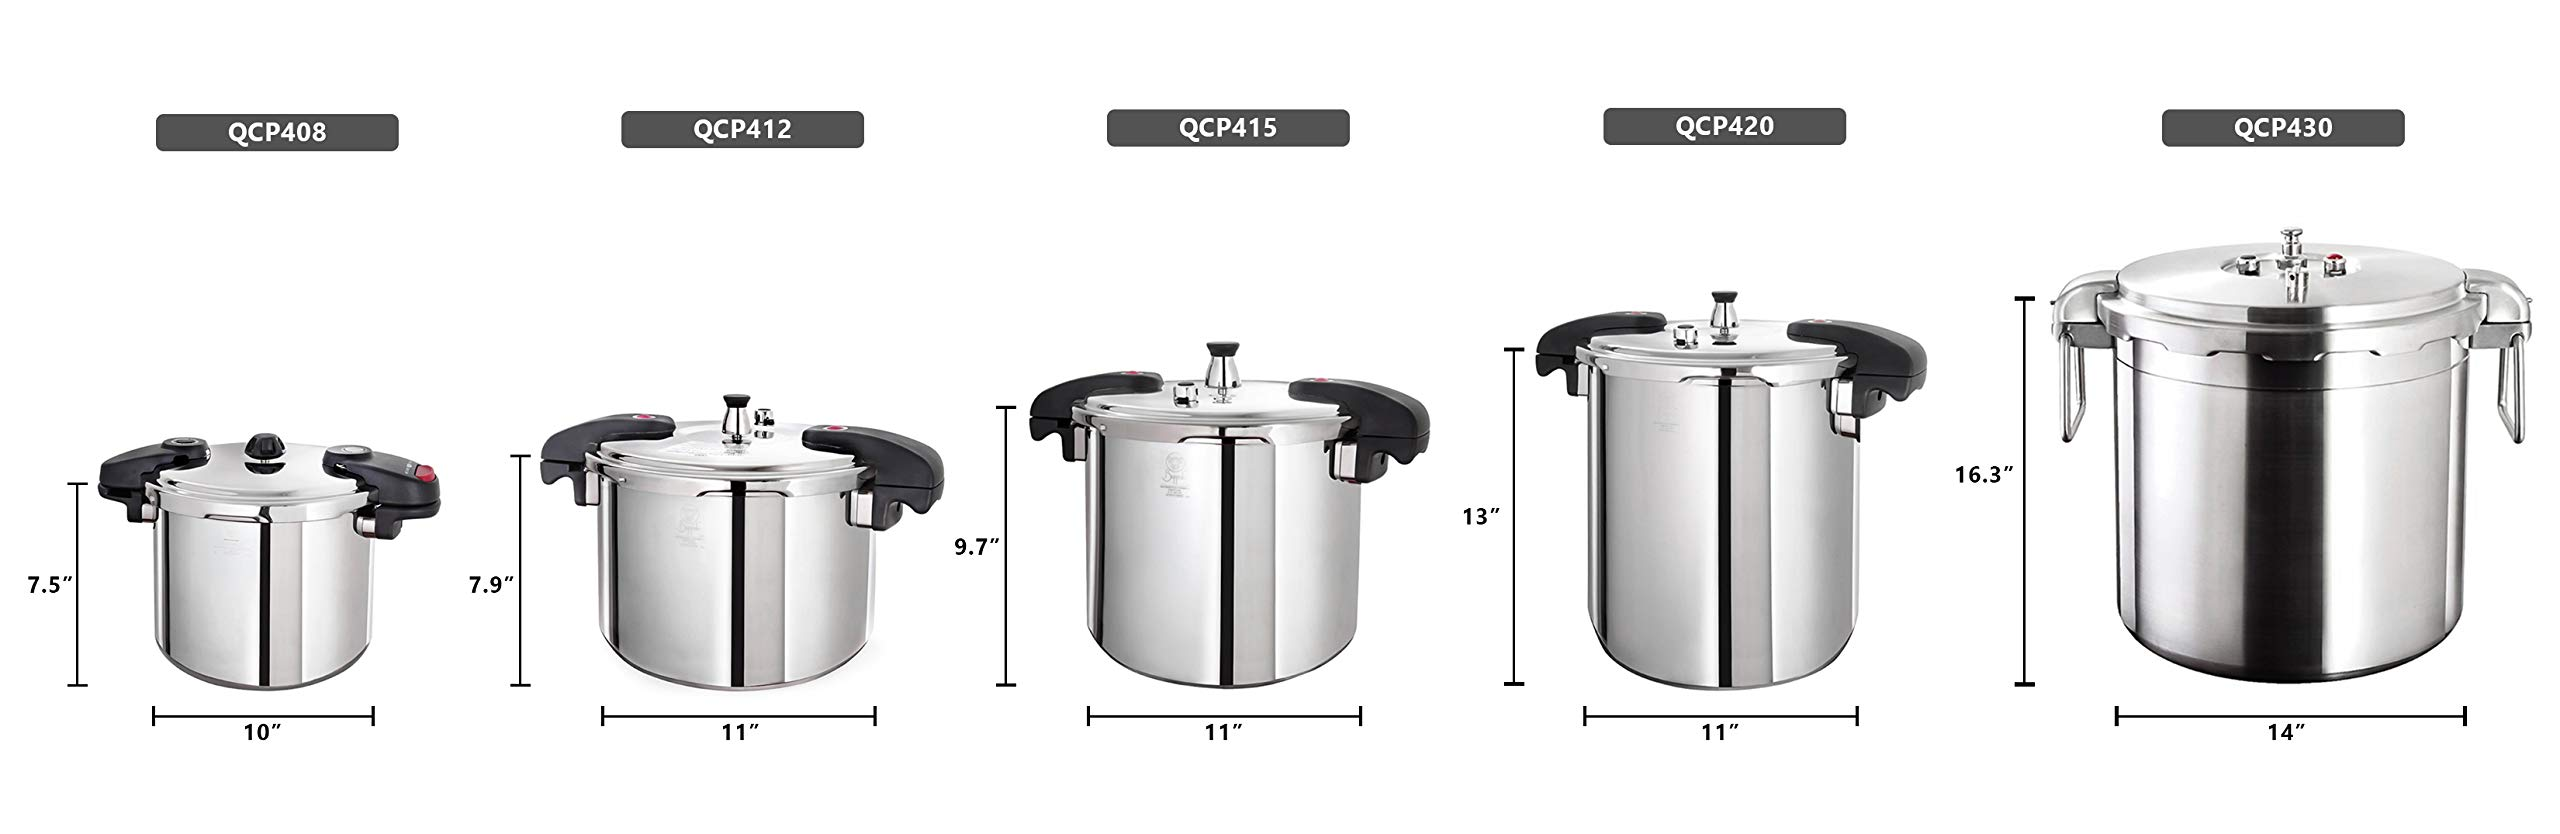 Buffalo QCP415 15-Quart Stainless Steel Pressure Cooker [Classic series] by Buffalo (Image #2)